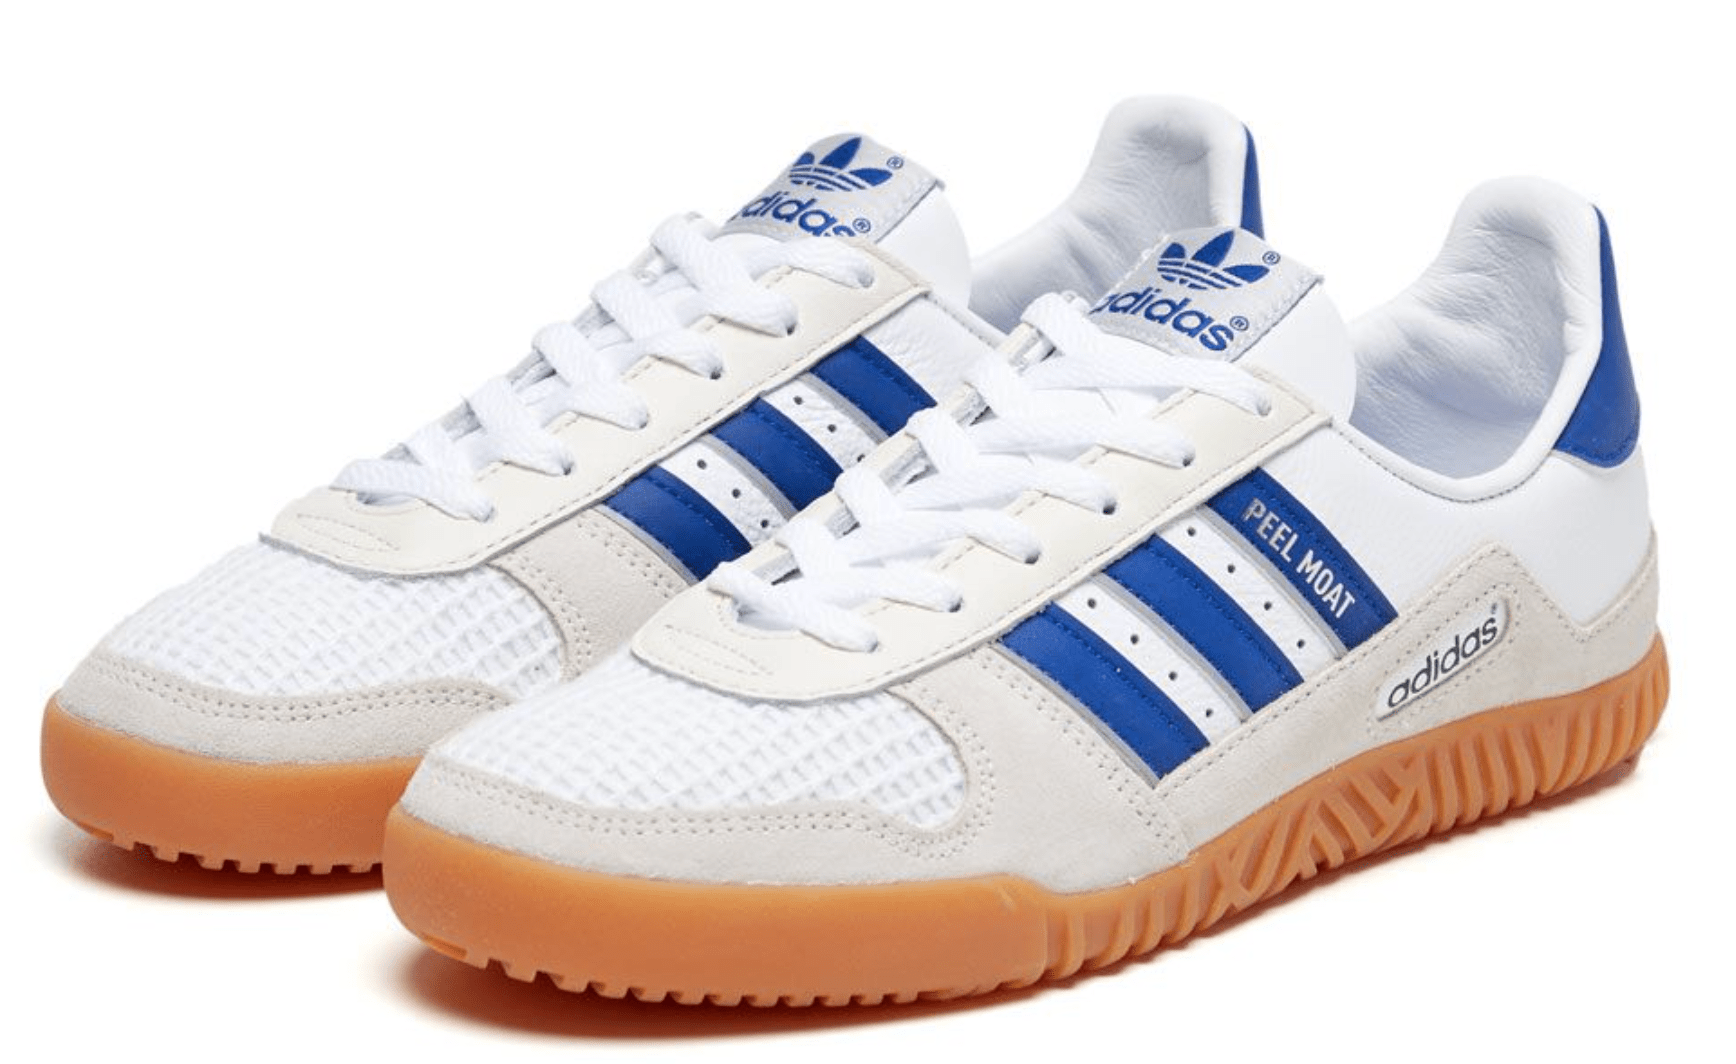 Adidas Launches Stockport Trainer